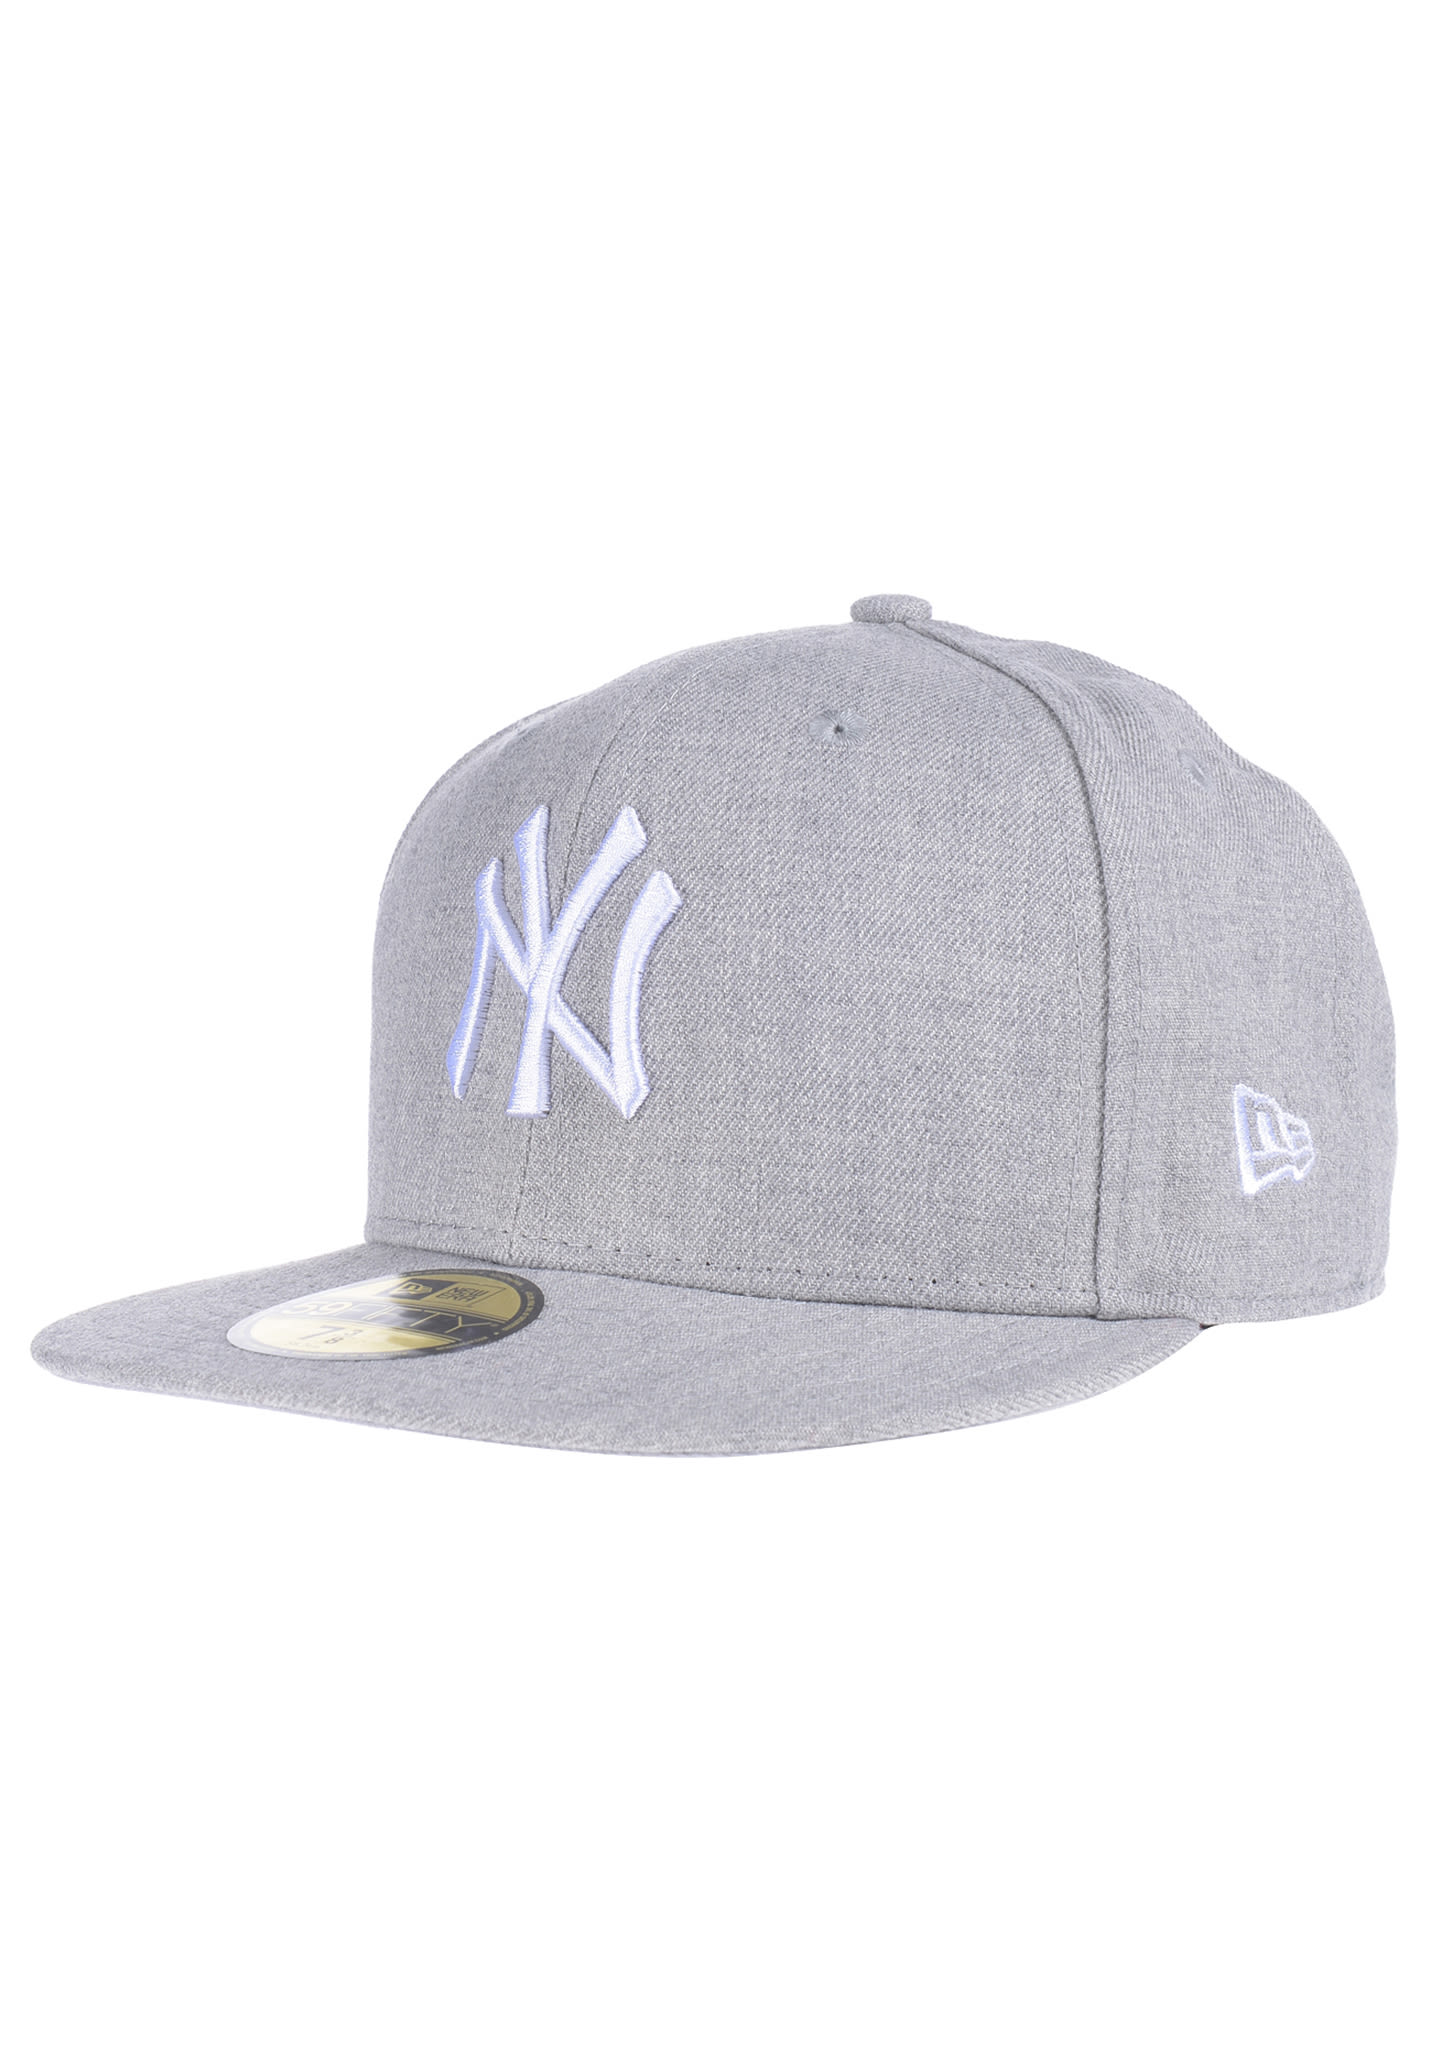 NEW Era 59Fifty New York Yankees - Fitted Cap - Grey - Planet Sports 5d4c98b32c9